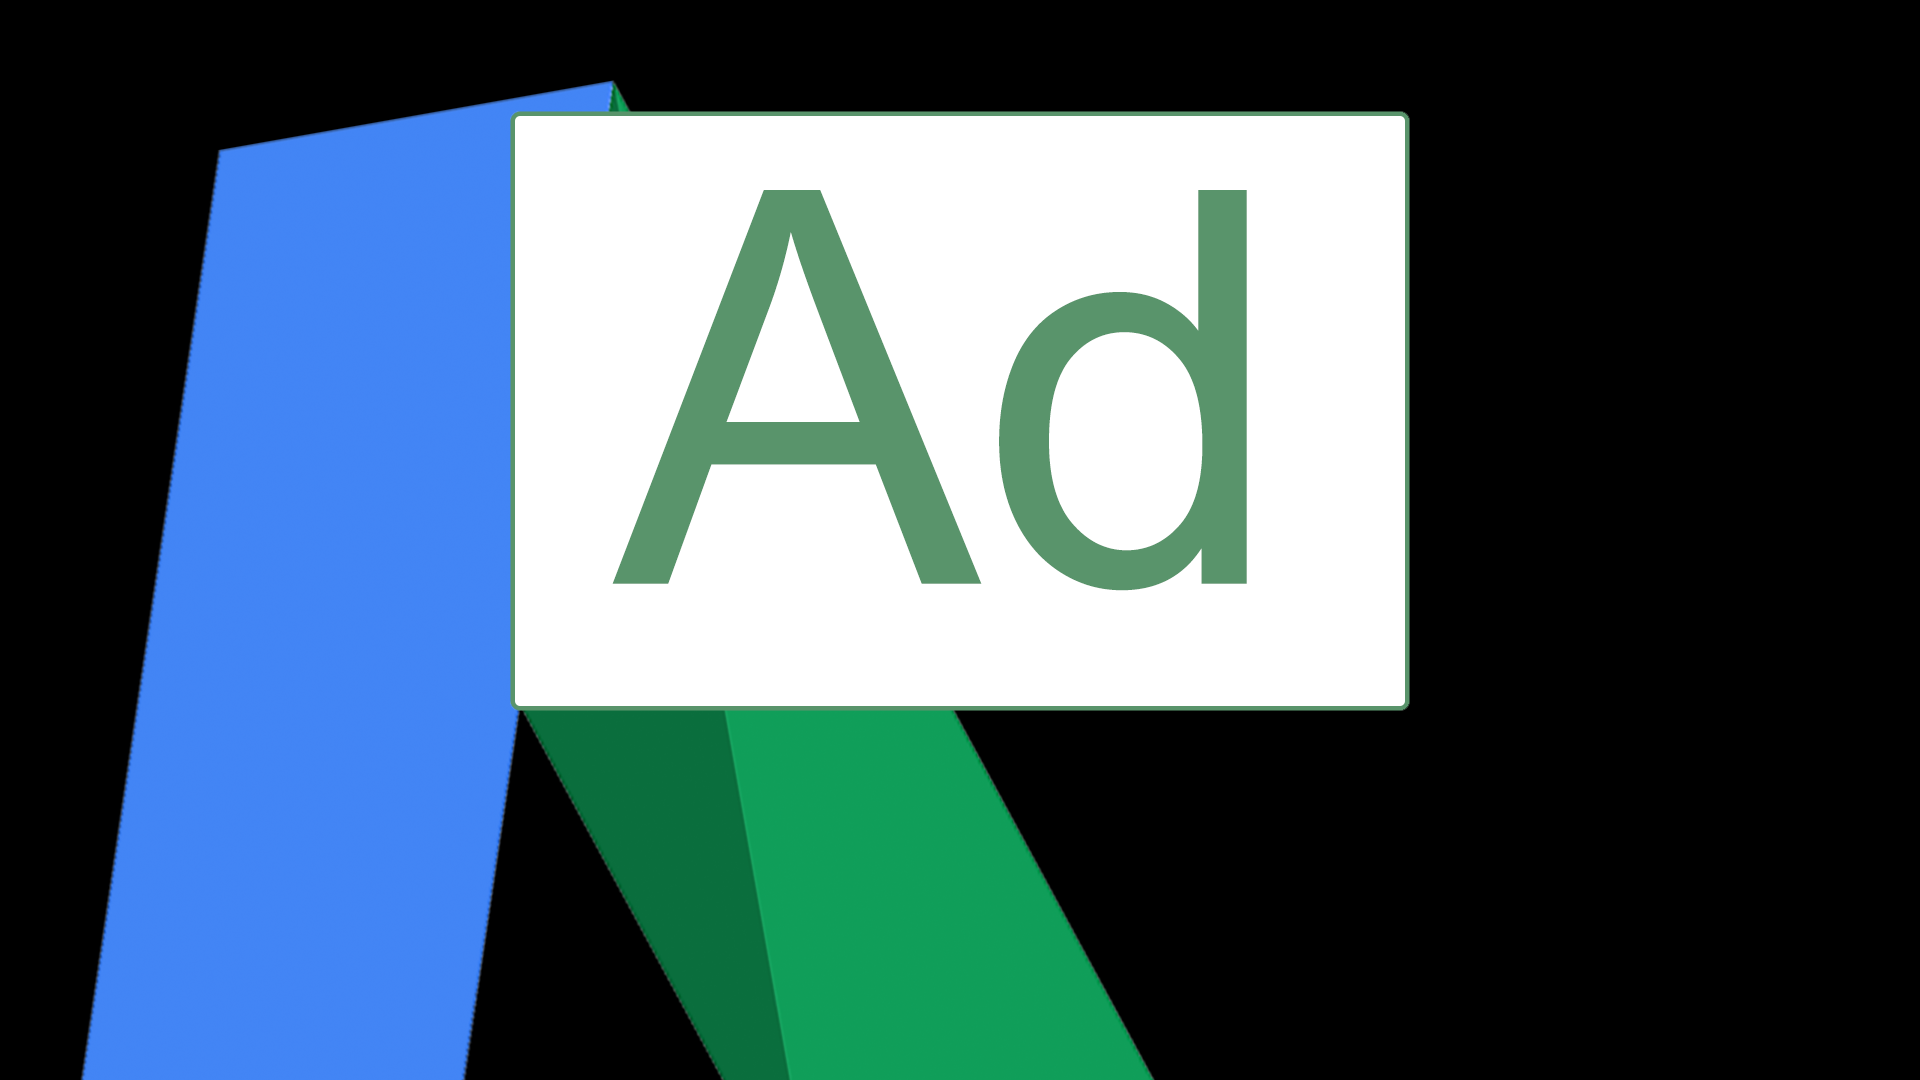 google-adwords-green-outline-ad-2017-1920